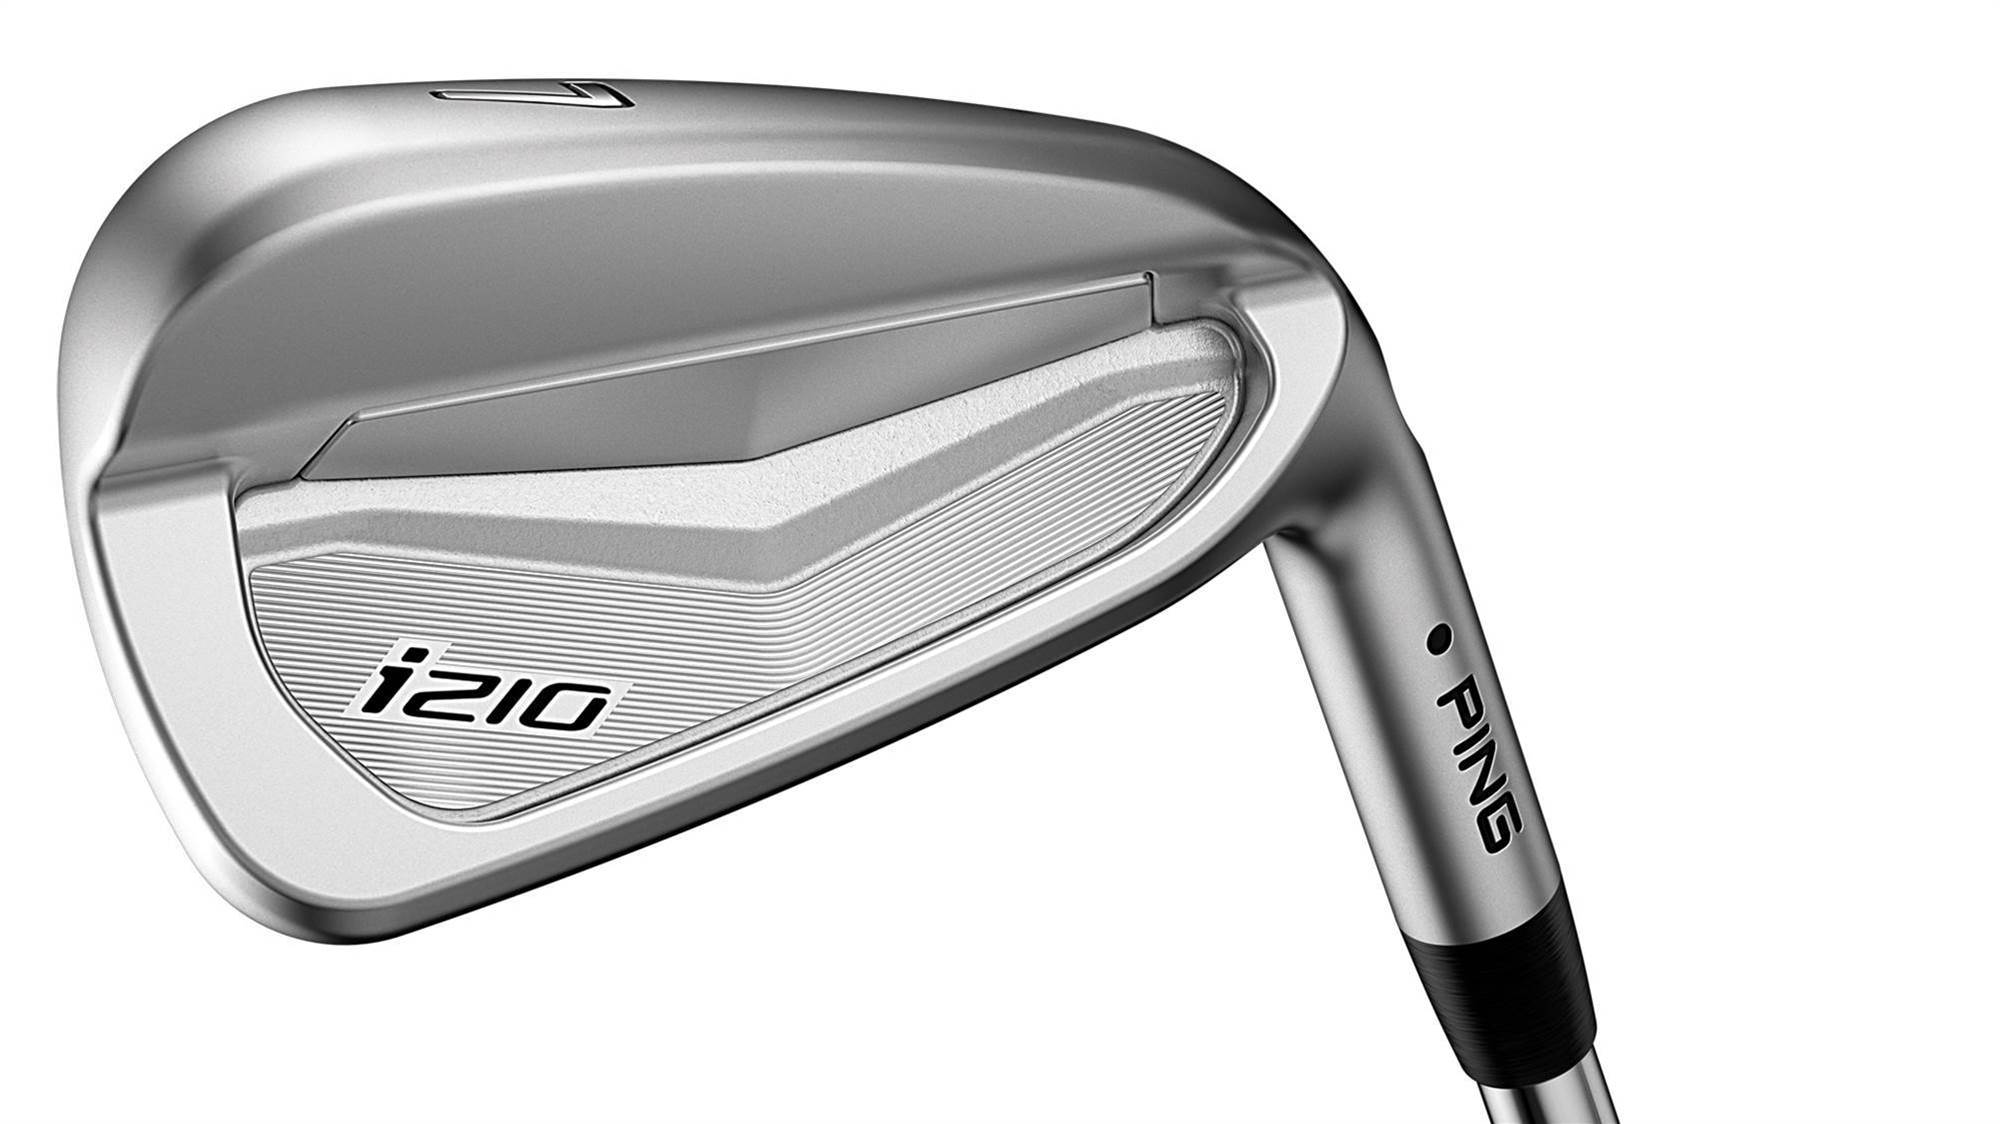 Ping introduces new irons and forged wedge